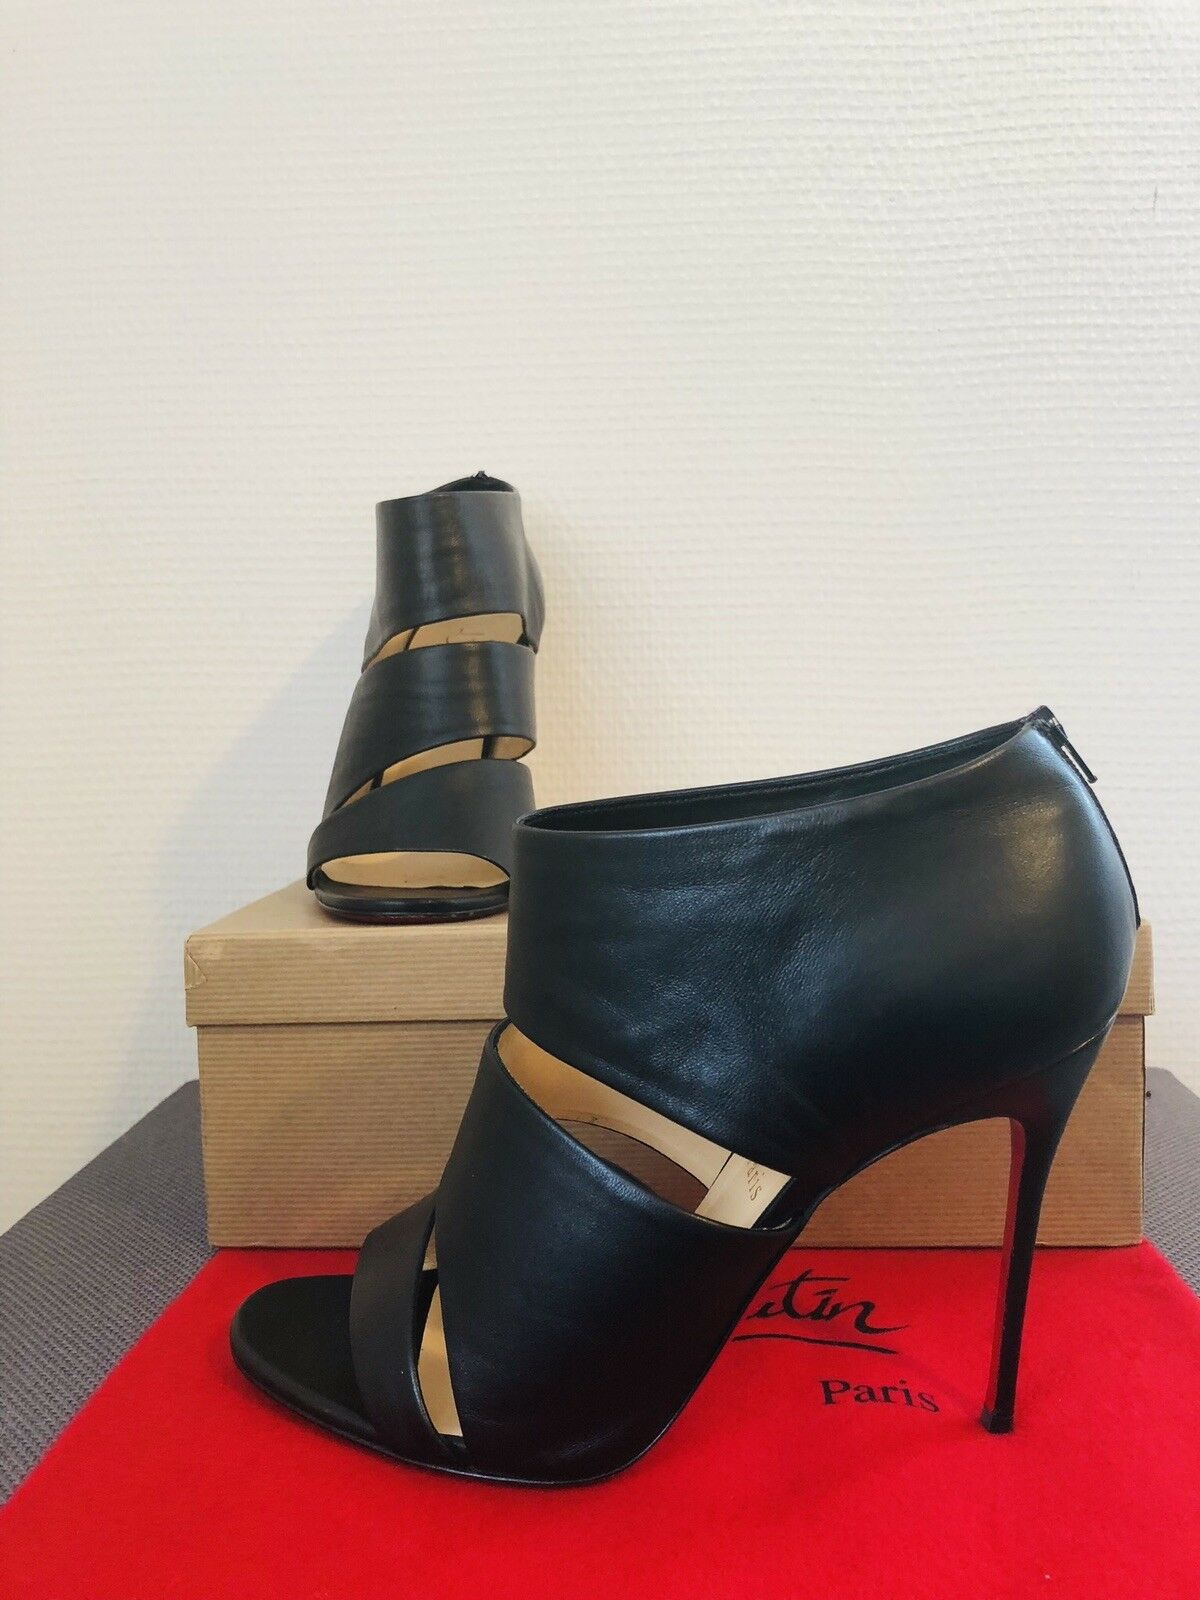 100% orig. Christian Louboutin bottes cachottiere cachottiere cachottiere Bottines Noir Taille 40,5 wneu 474bef